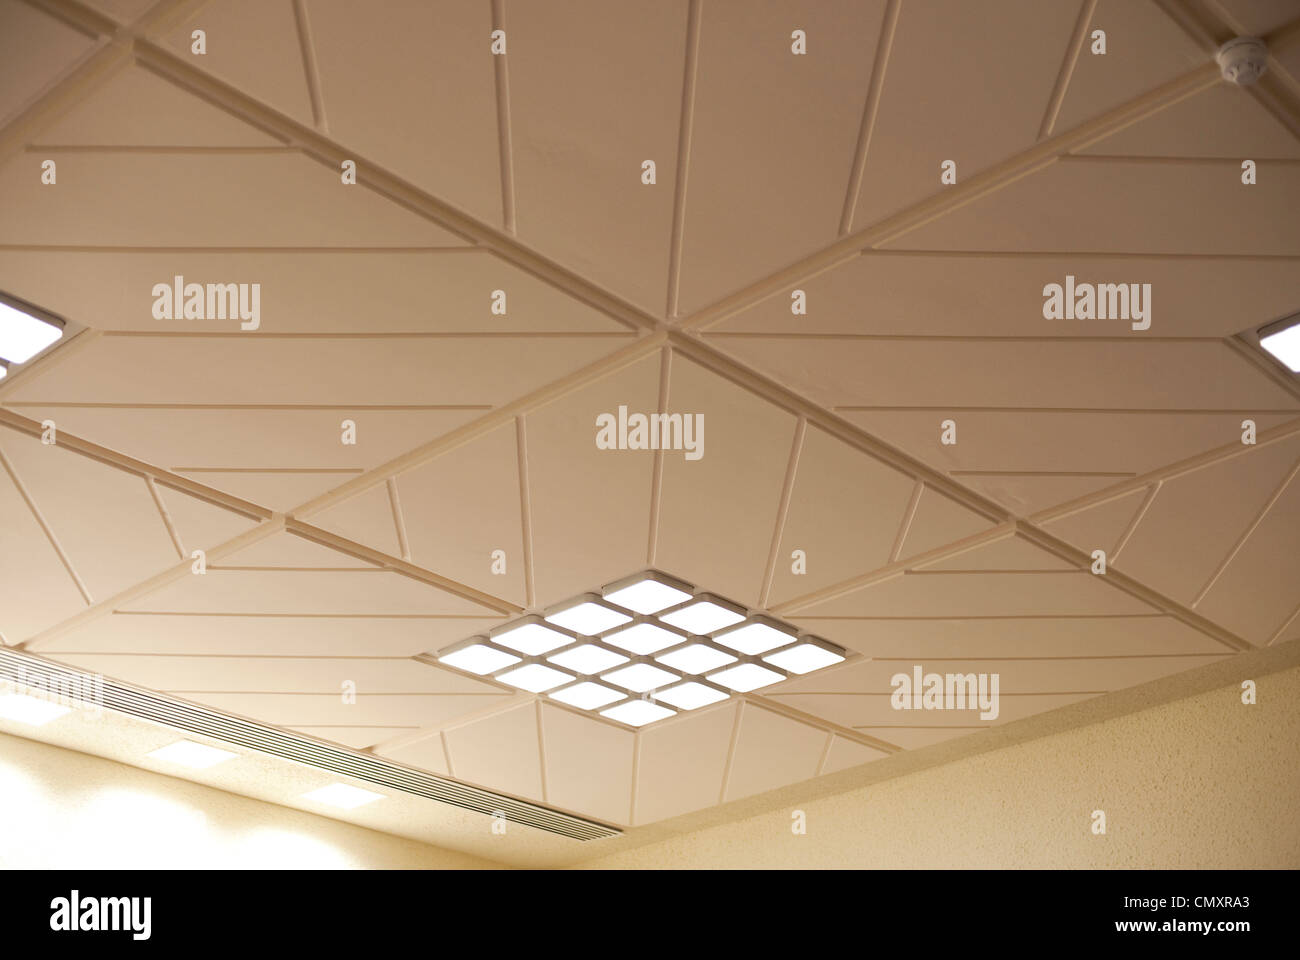 Ceiling tile patterns stock photos ceiling tile patterns stock beige and white ceiling tile patterns in an office stock image dailygadgetfo Gallery